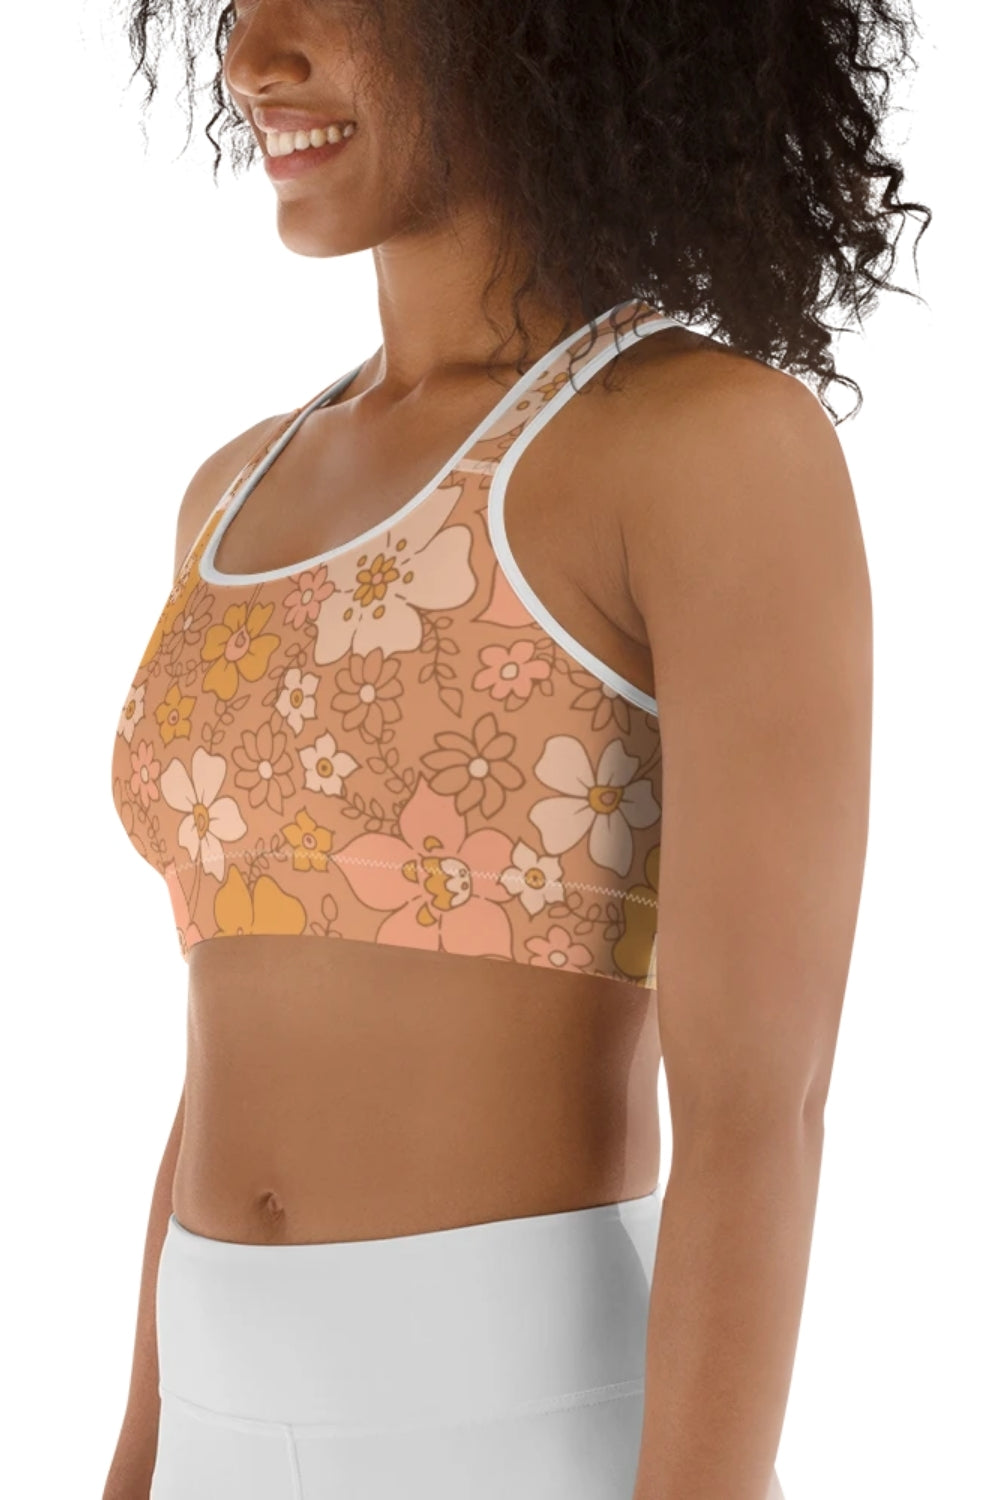 Peachy Keen Sports Bra